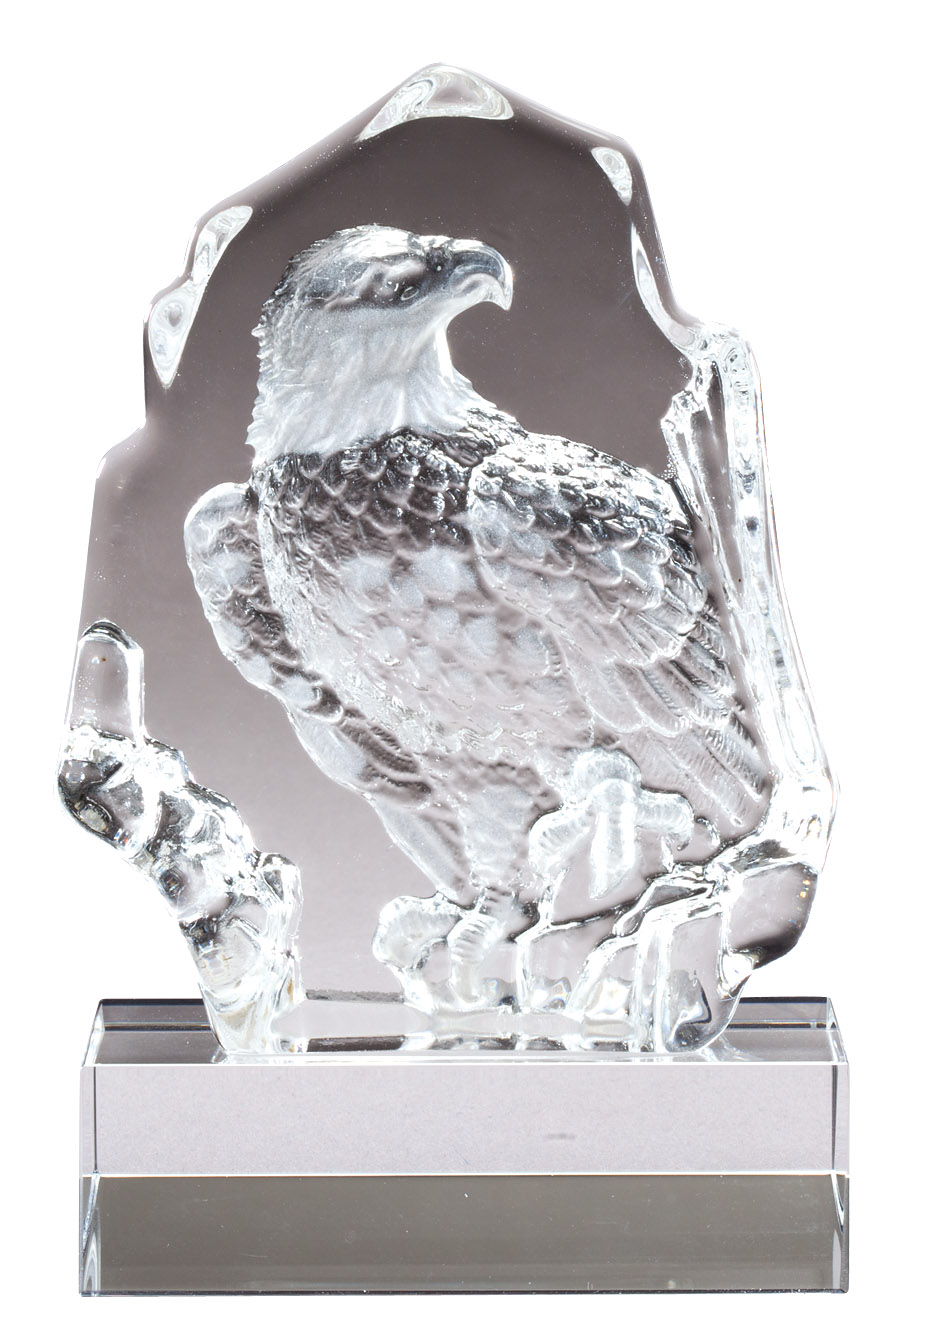 Sculpted crystal eagle award - CRY235